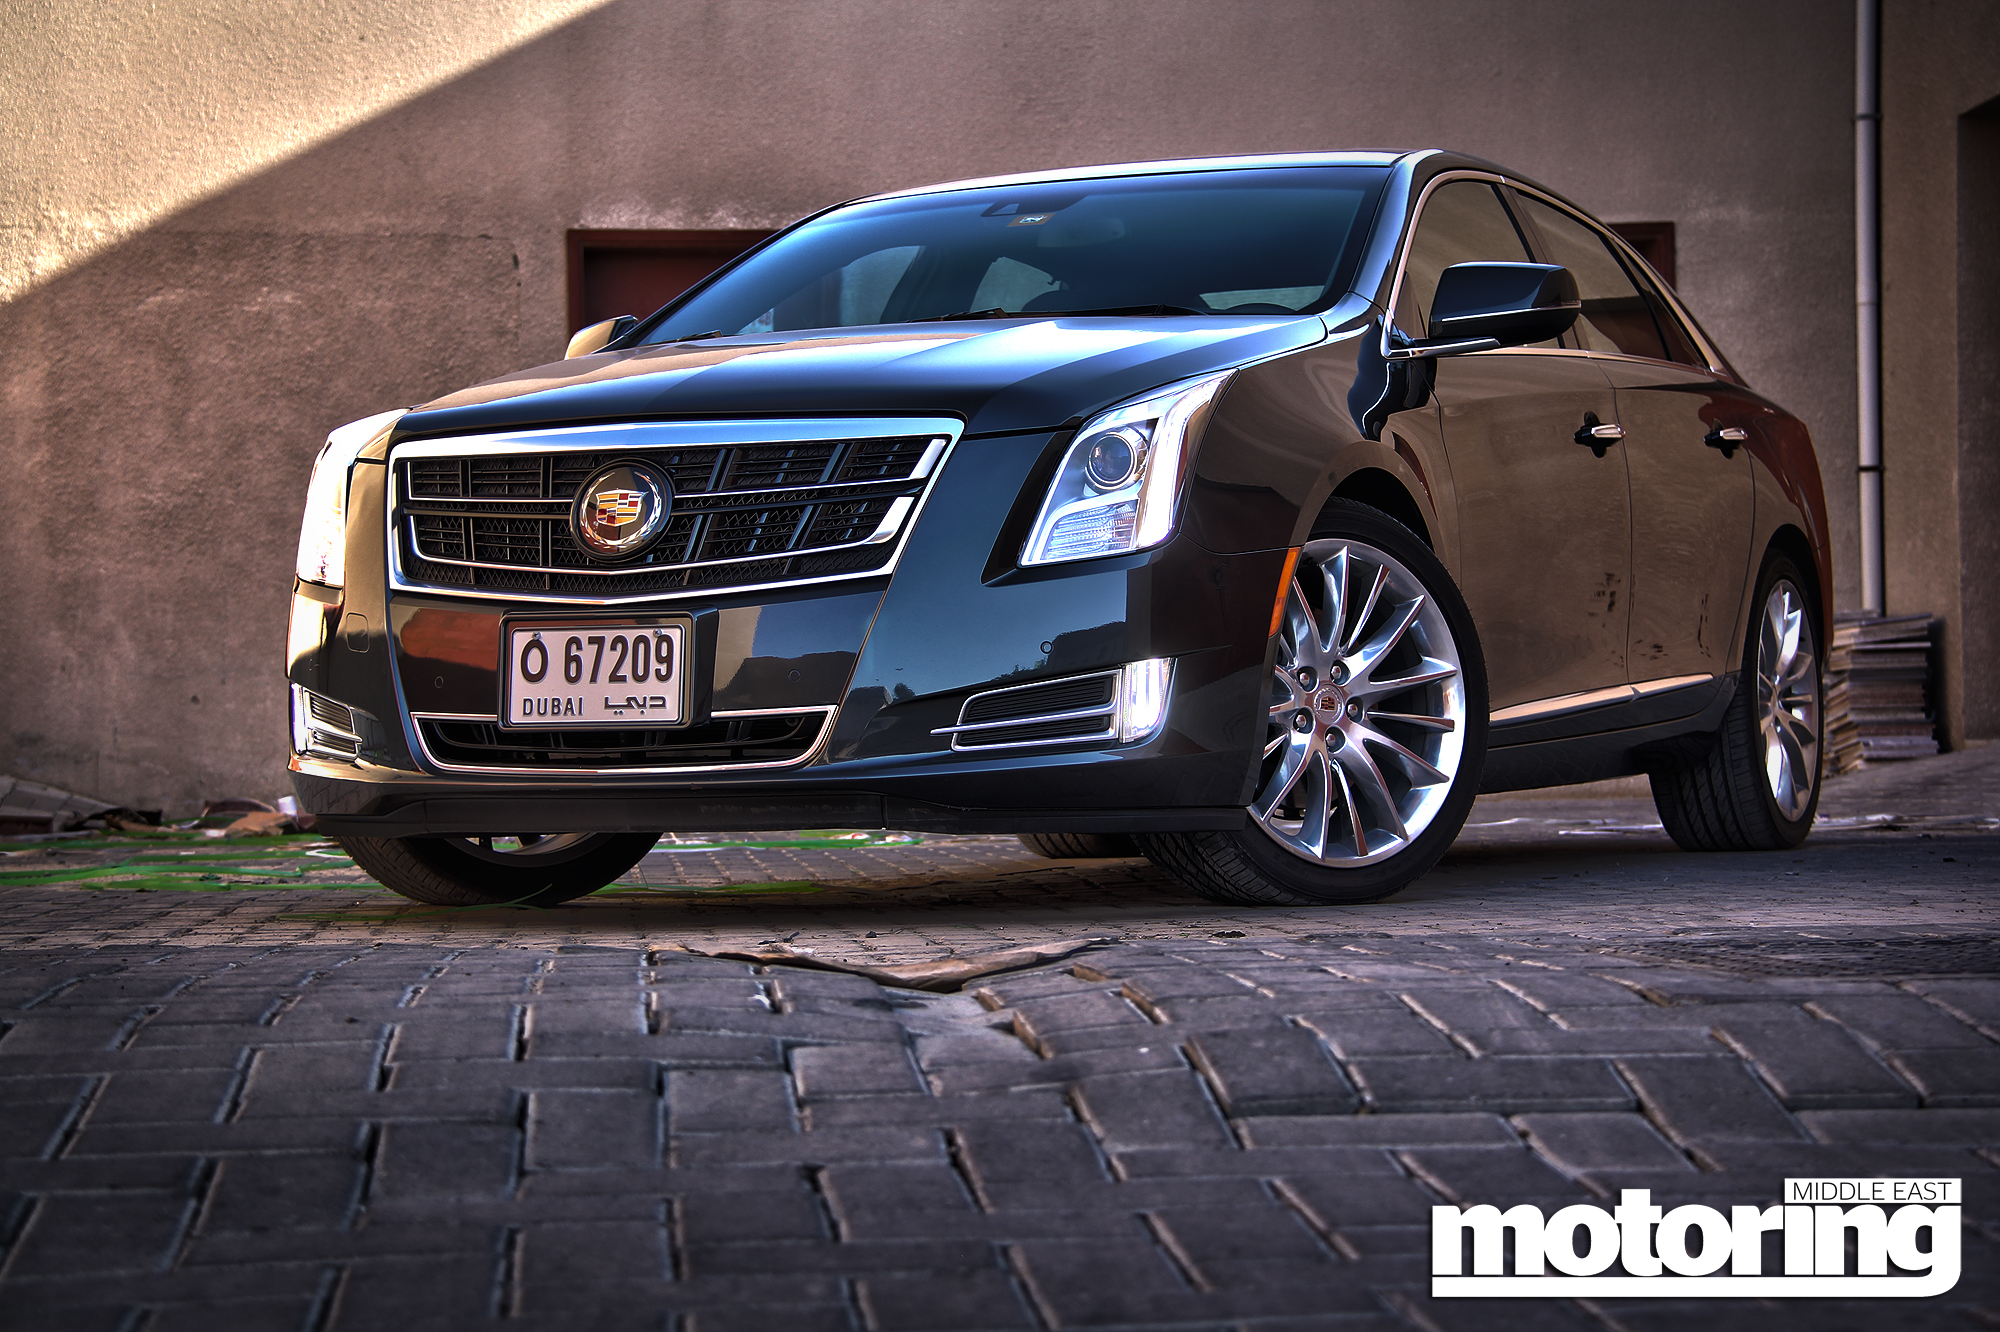 2014 cadillac xts v sport review motoring middle east car news reviews and buying. Black Bedroom Furniture Sets. Home Design Ideas